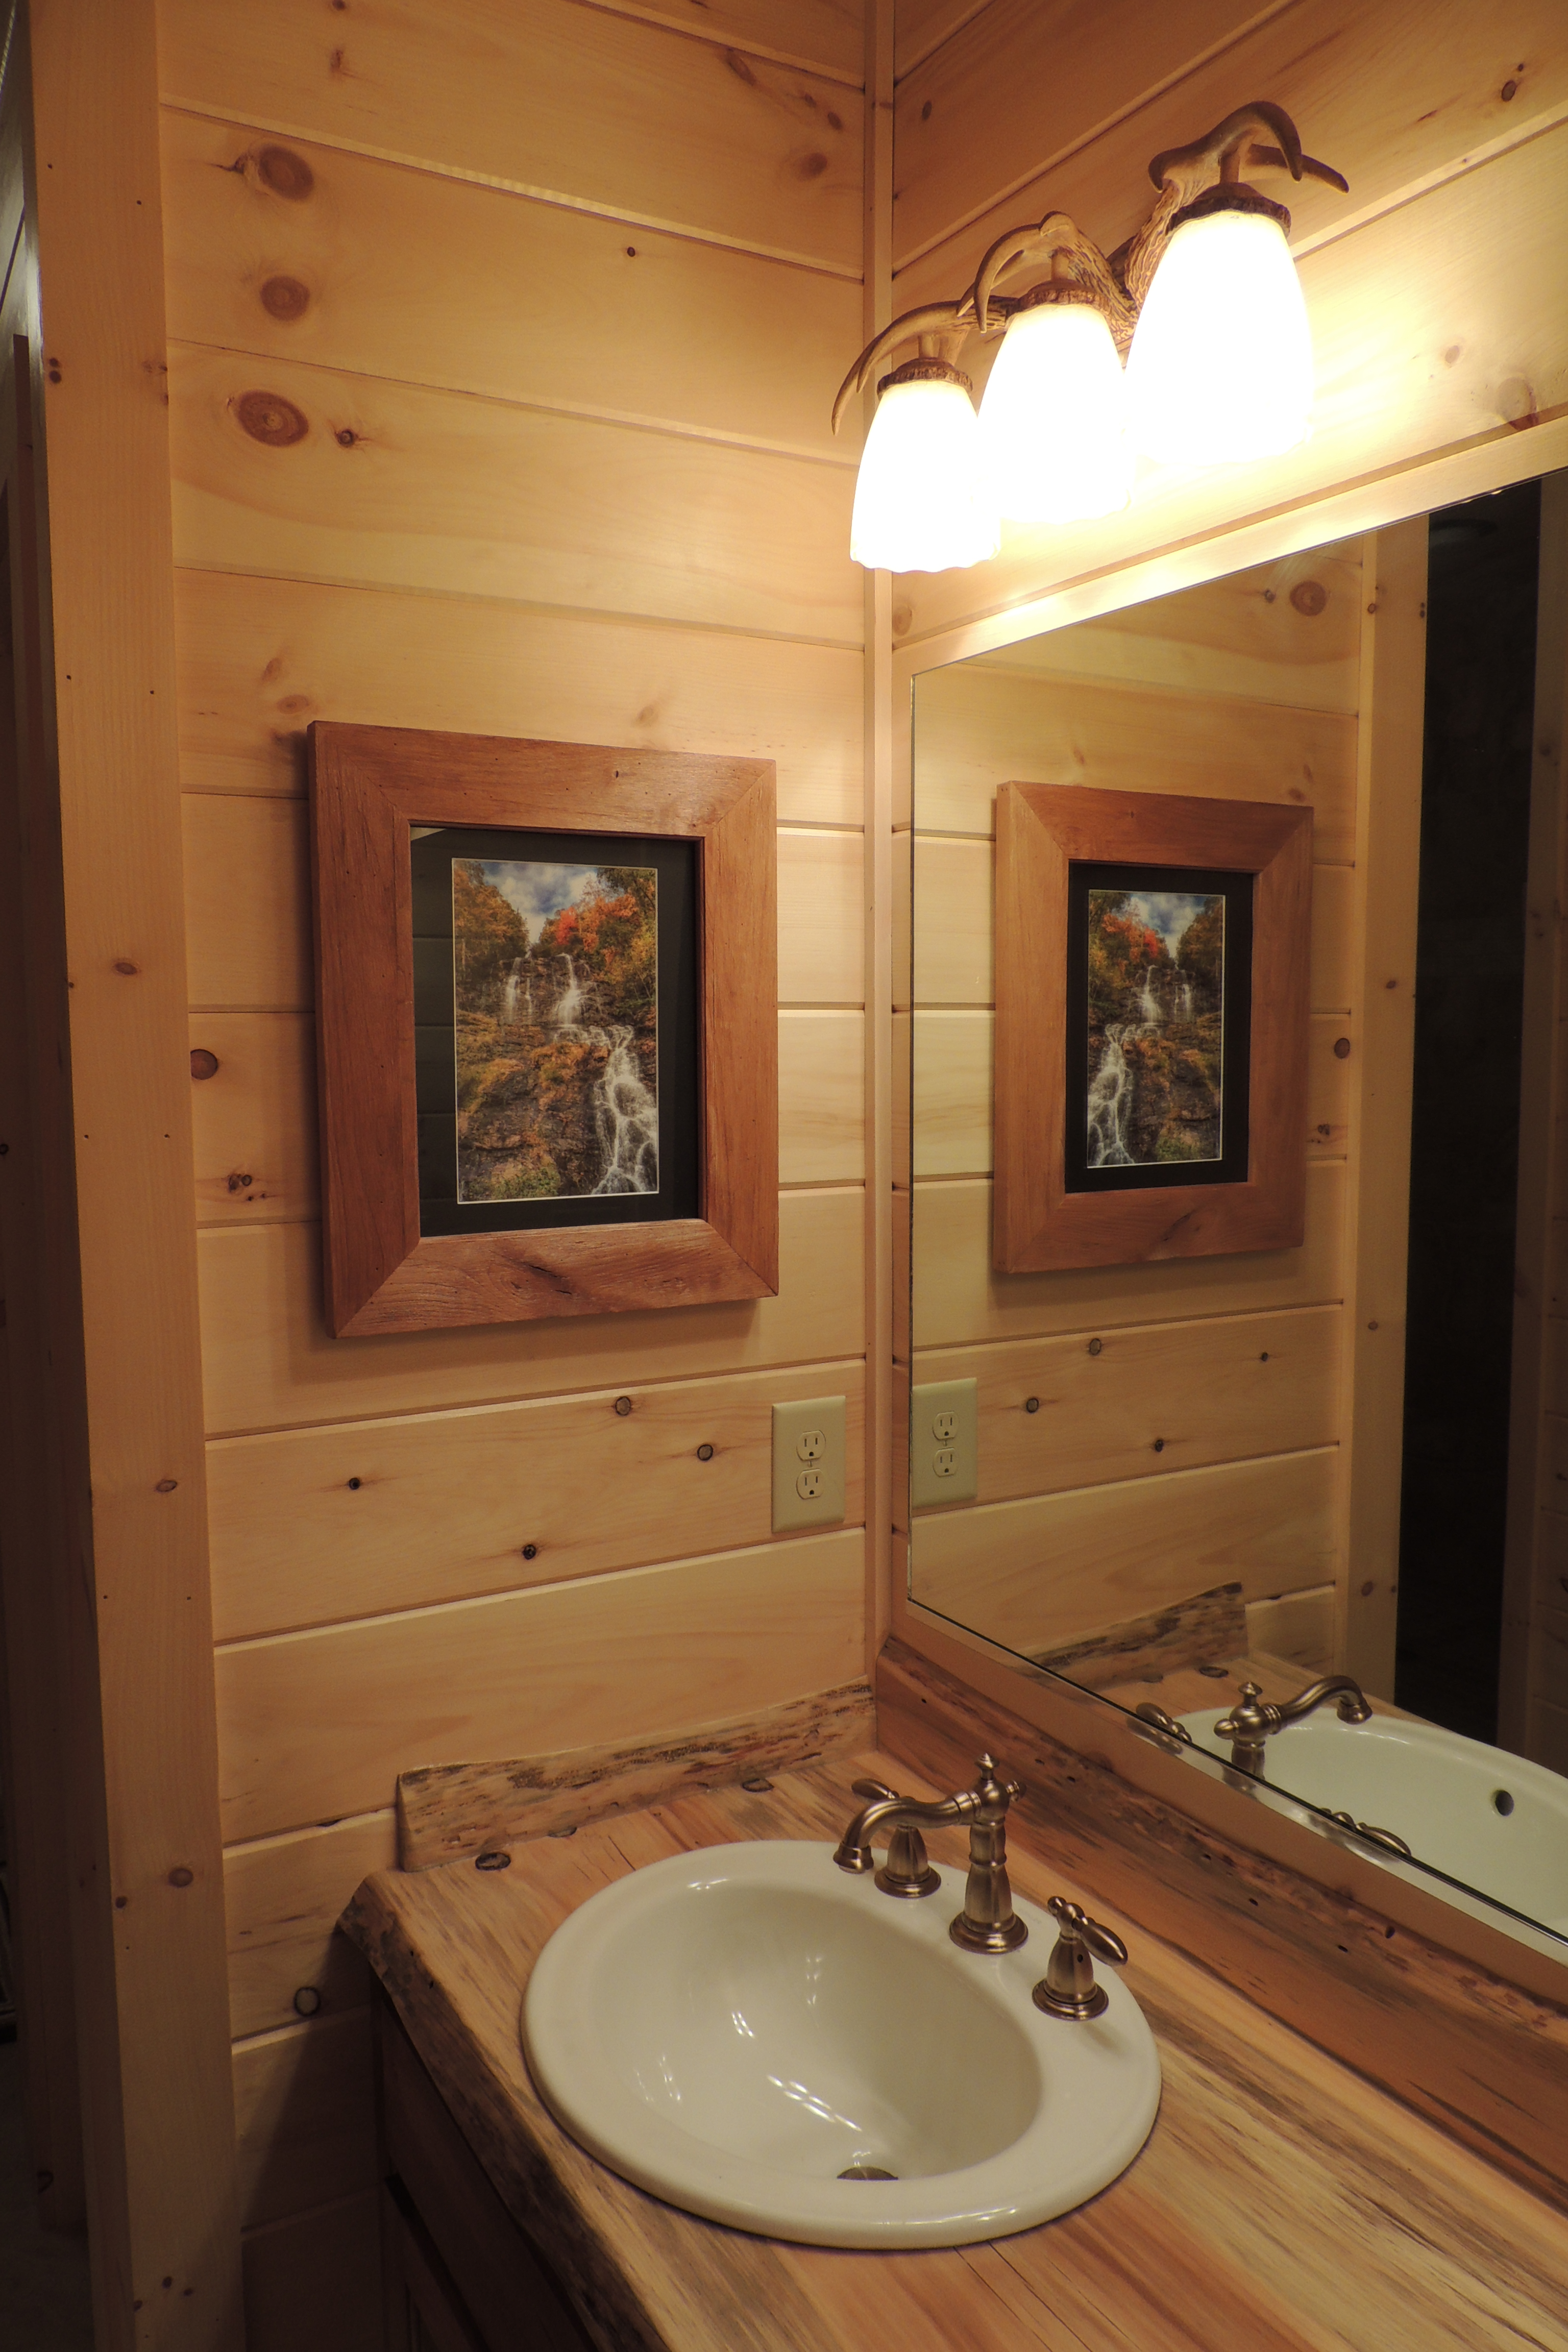 Customer Photos Testimonial Reviews For The World S Only Recessed Medicine Cabinet With A Picture Frame Door And No Mirror